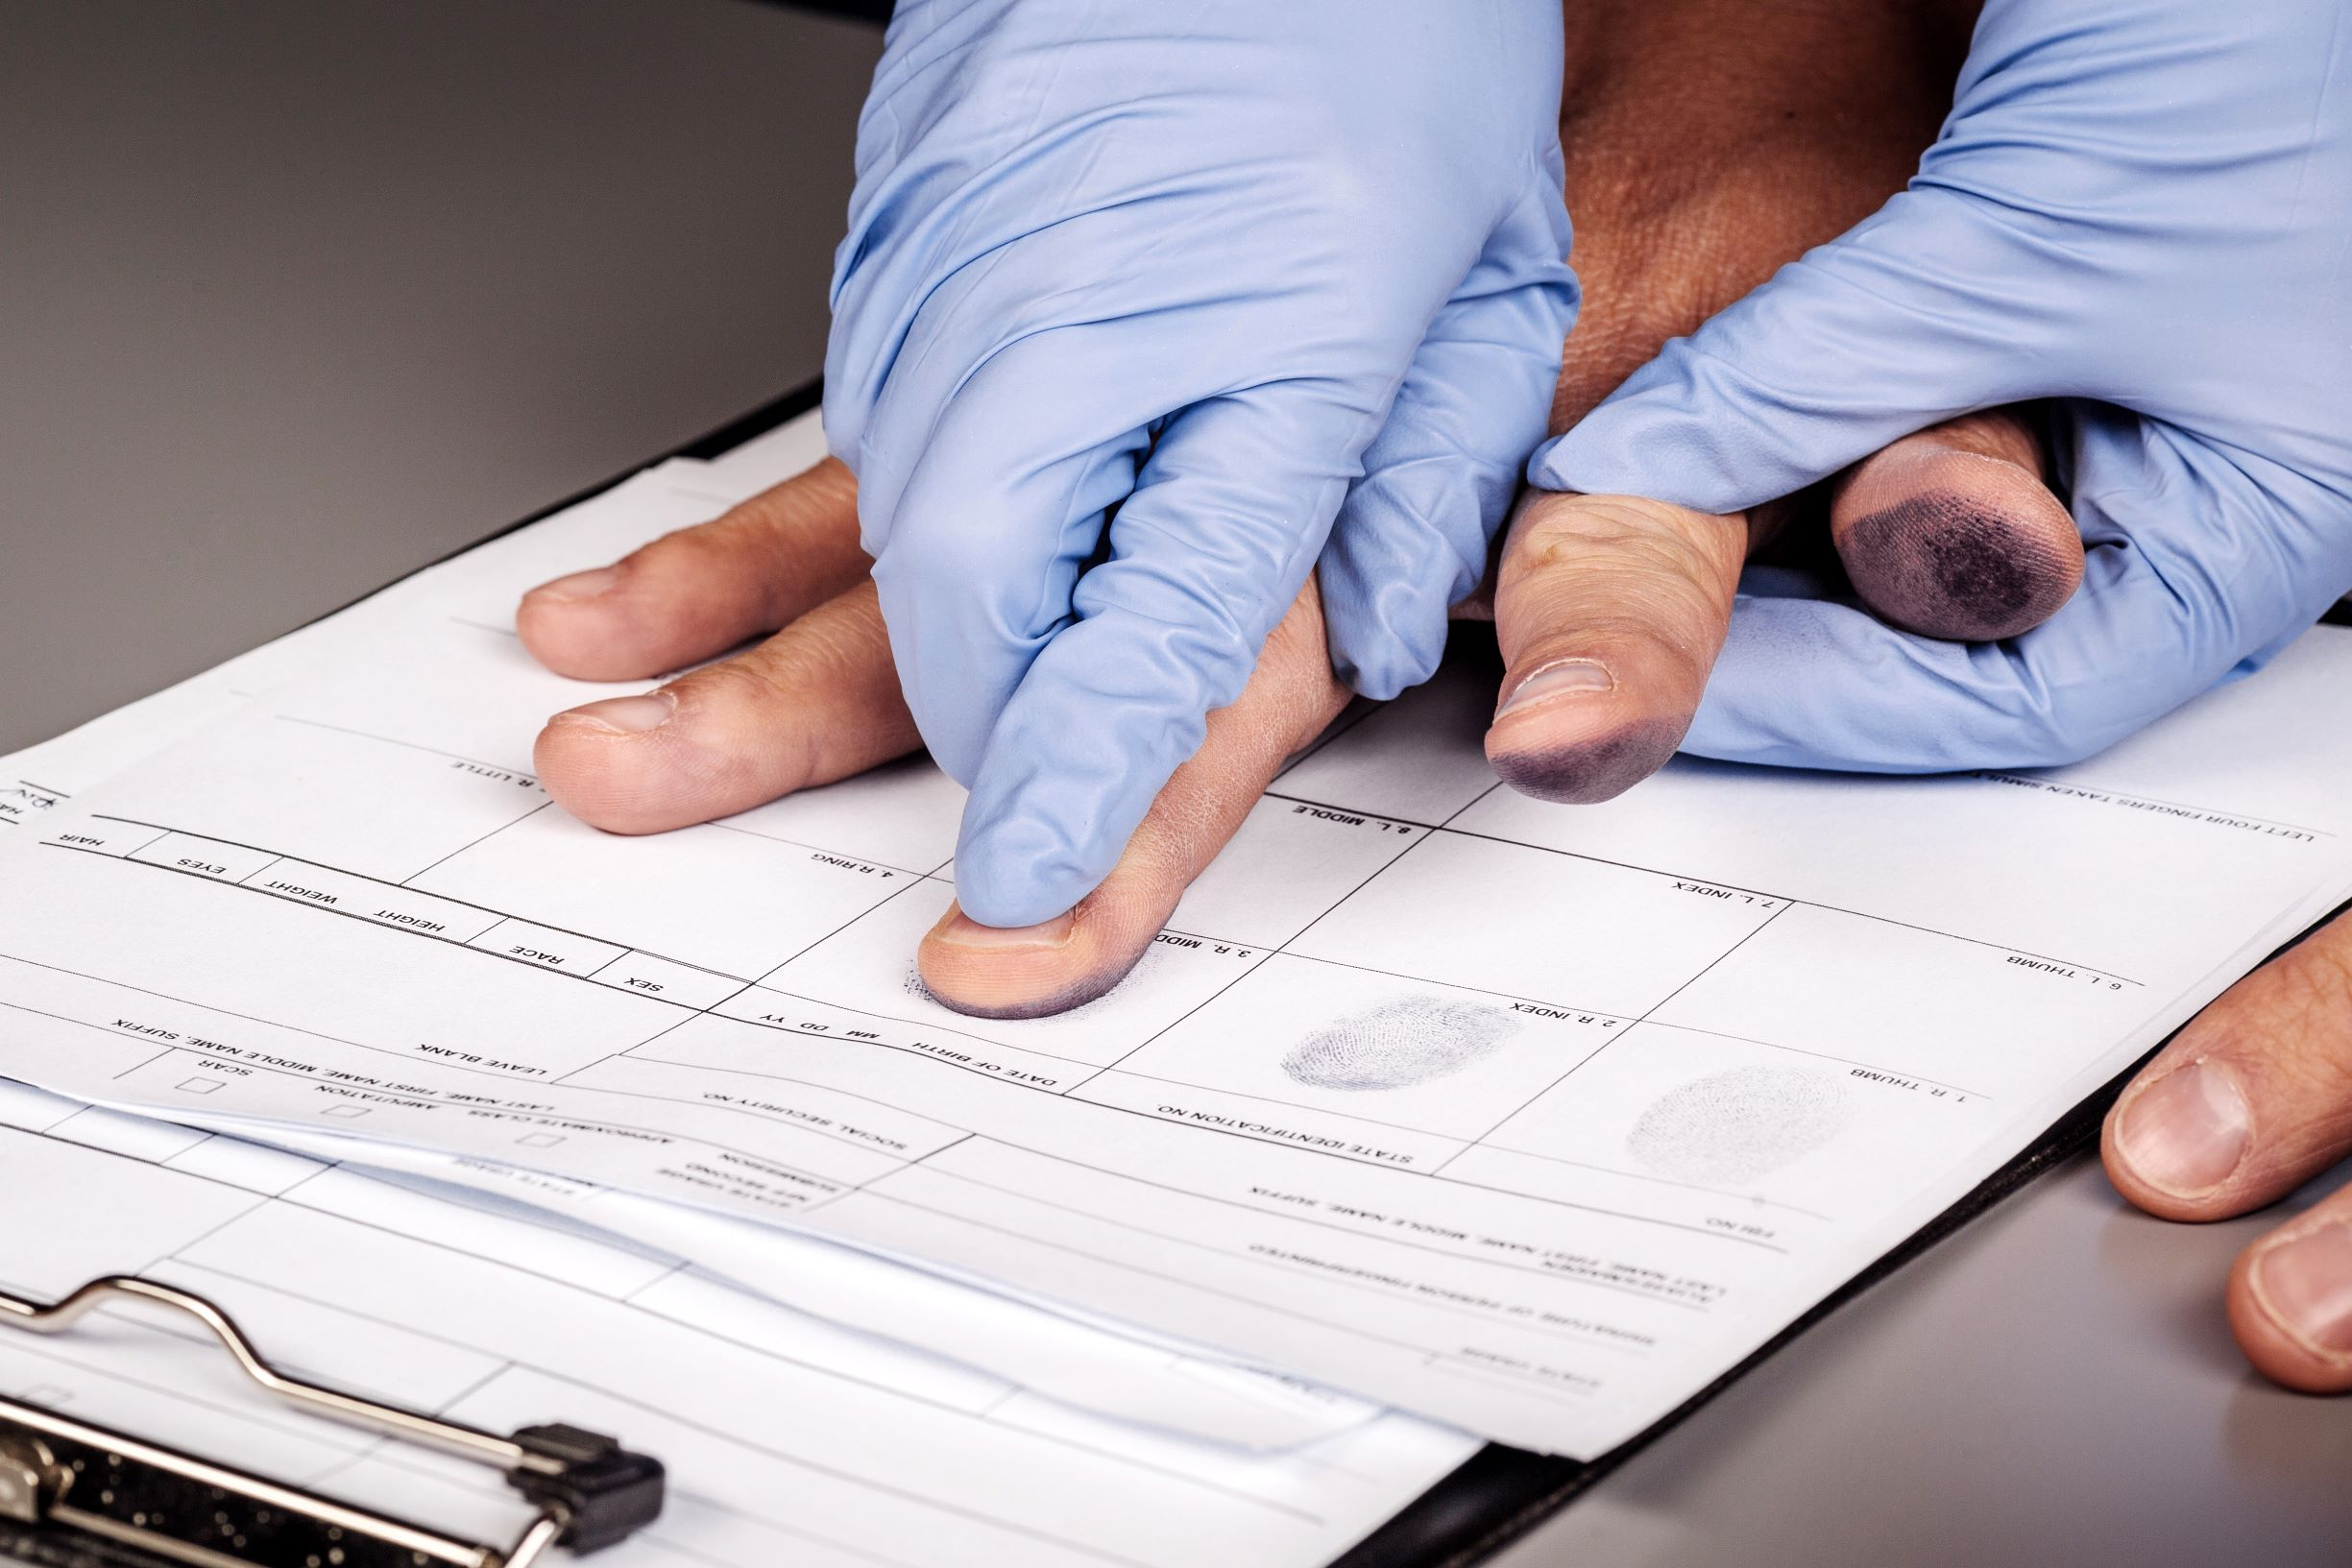 The booking process in Ohio, as in other states, includes having fingerprints taken.